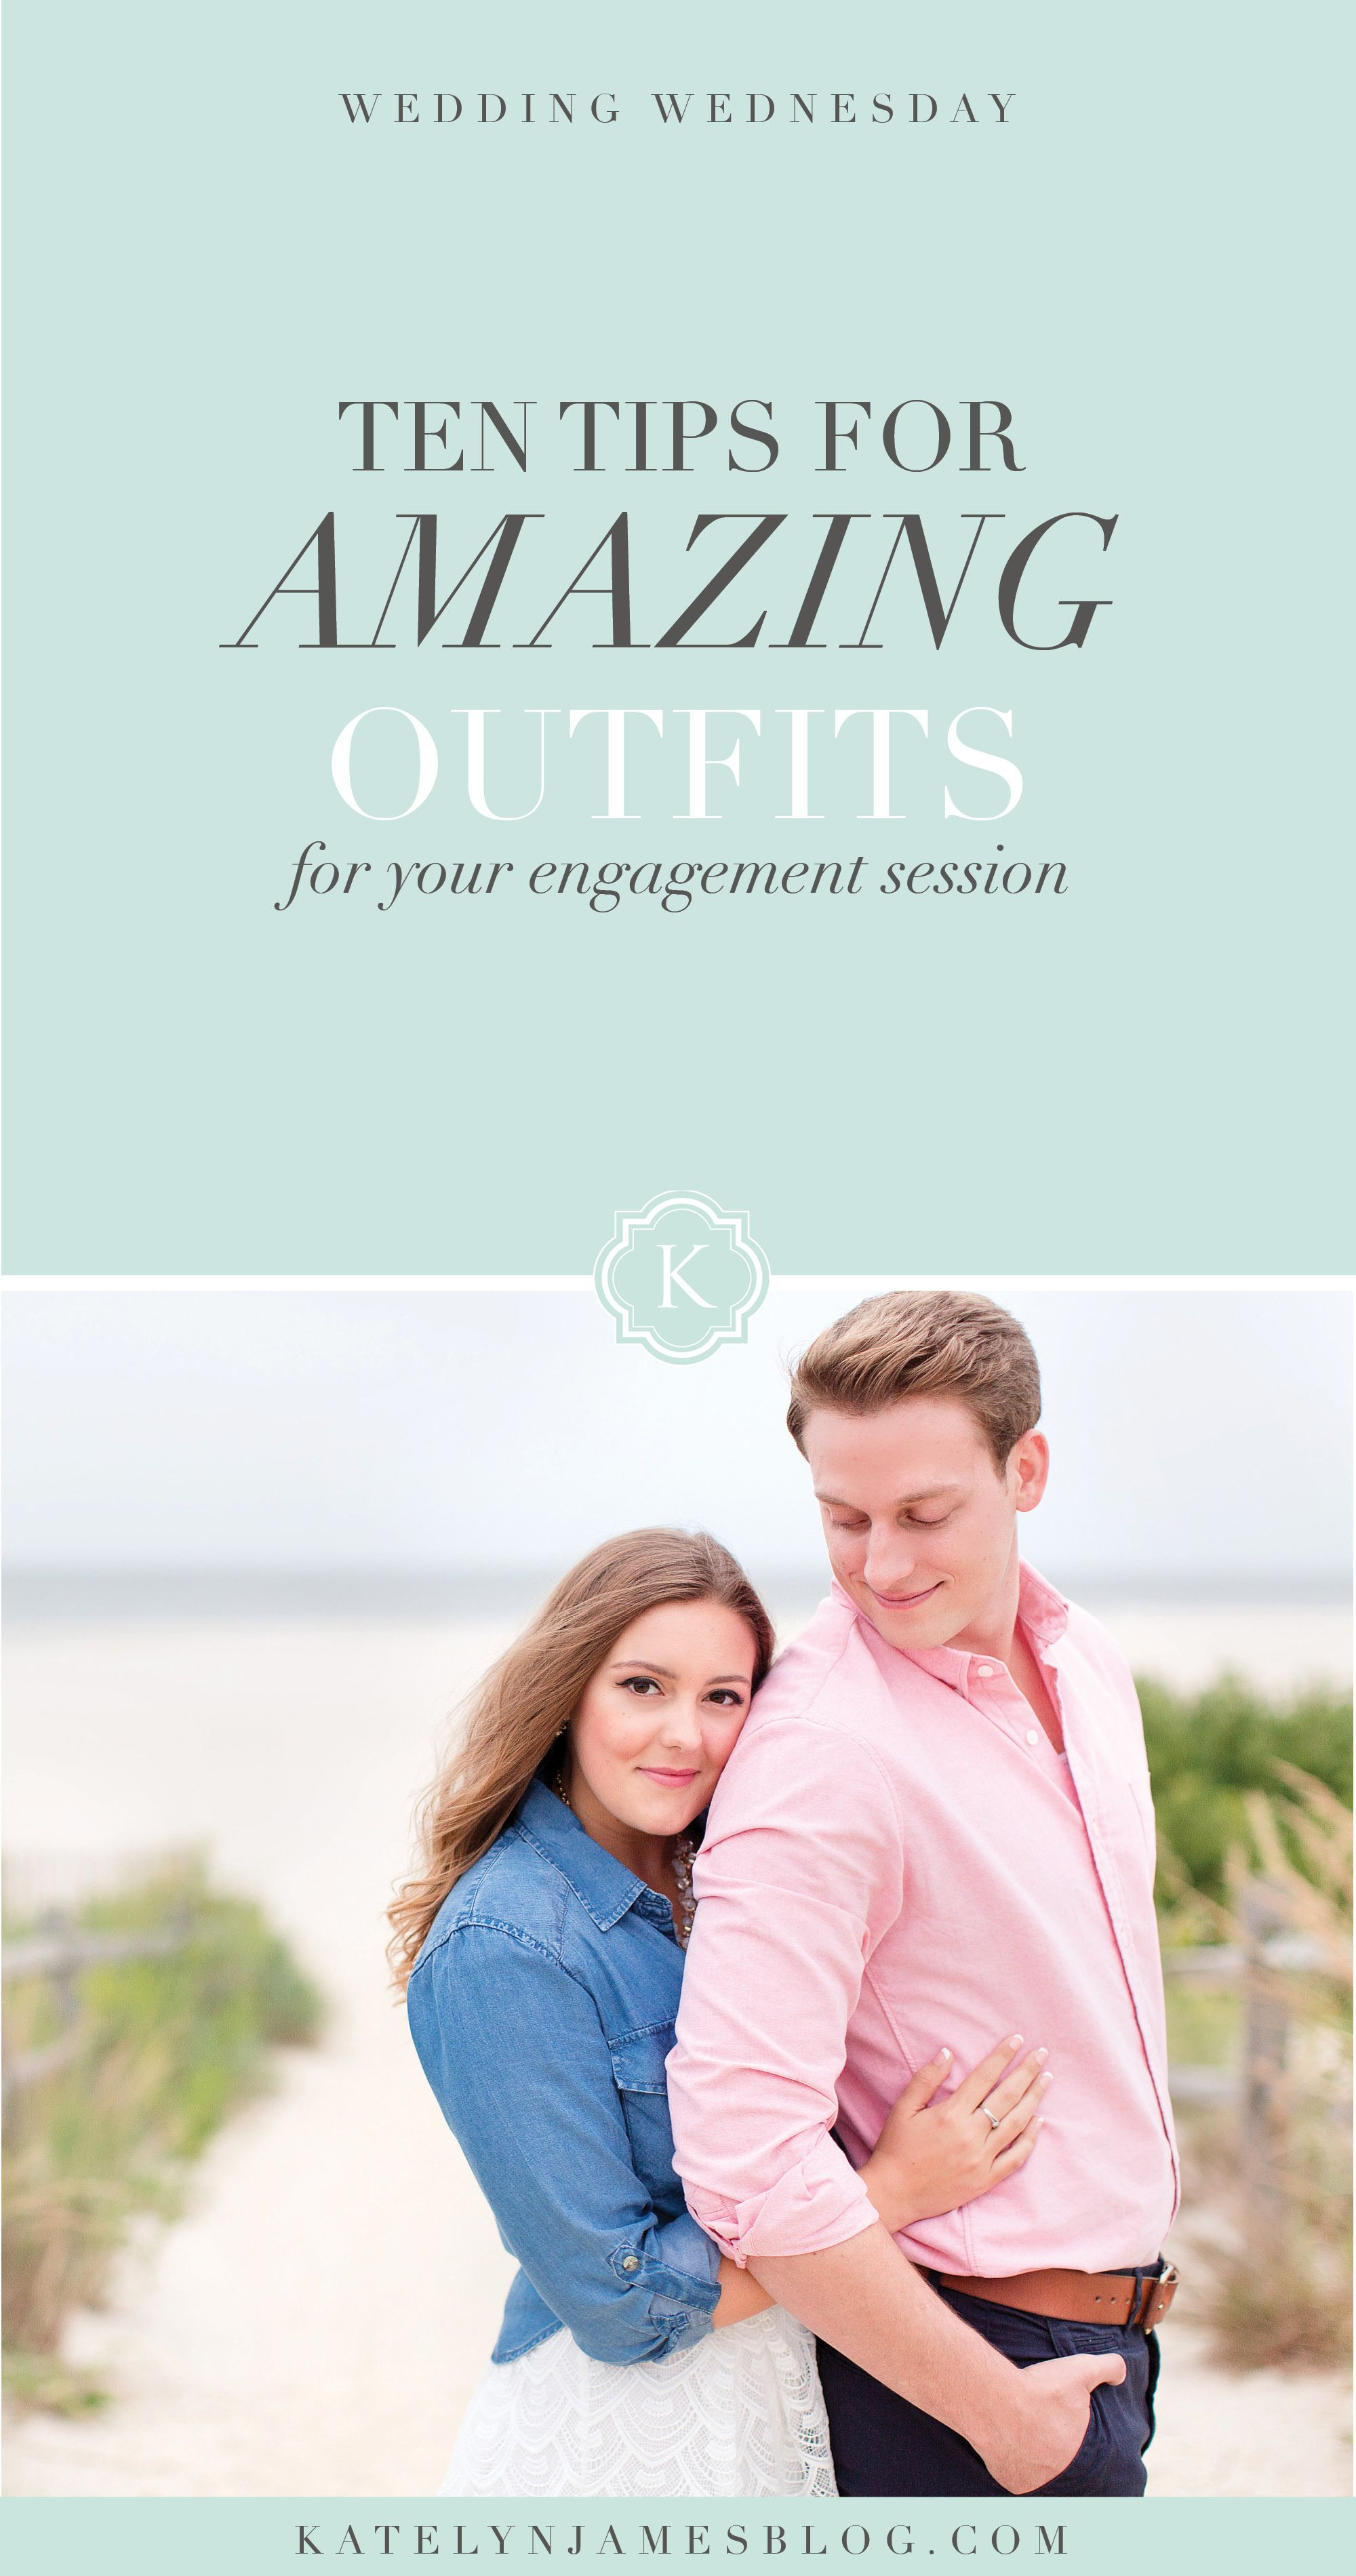 Ten Tips for Amazing Engagement Outfits   Virginia Wedding Photographer   Katelyn James Photography